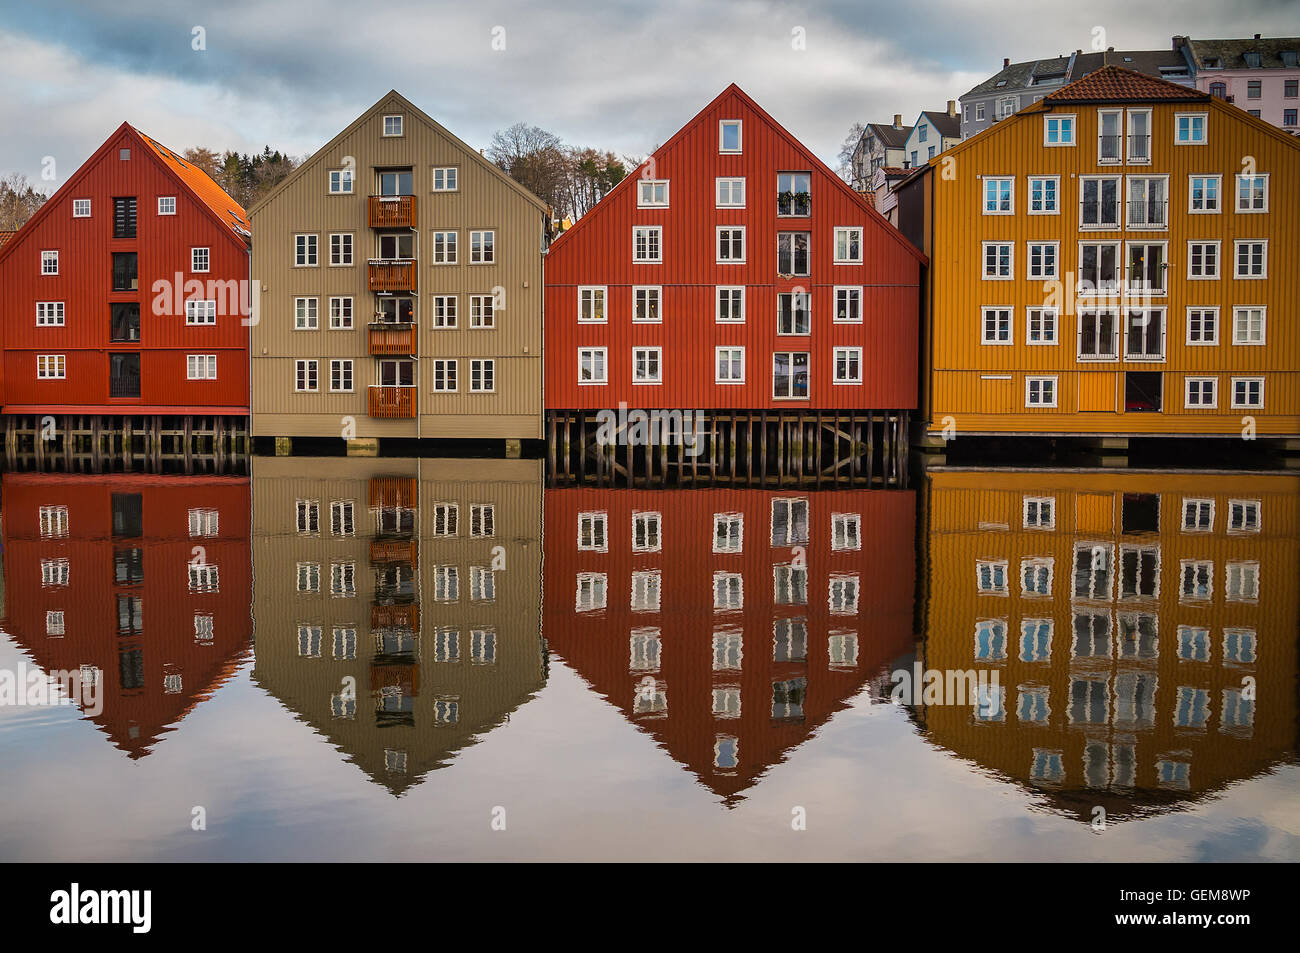 Symmetric reflection of houses in Trondheim, Norway - Stock Image